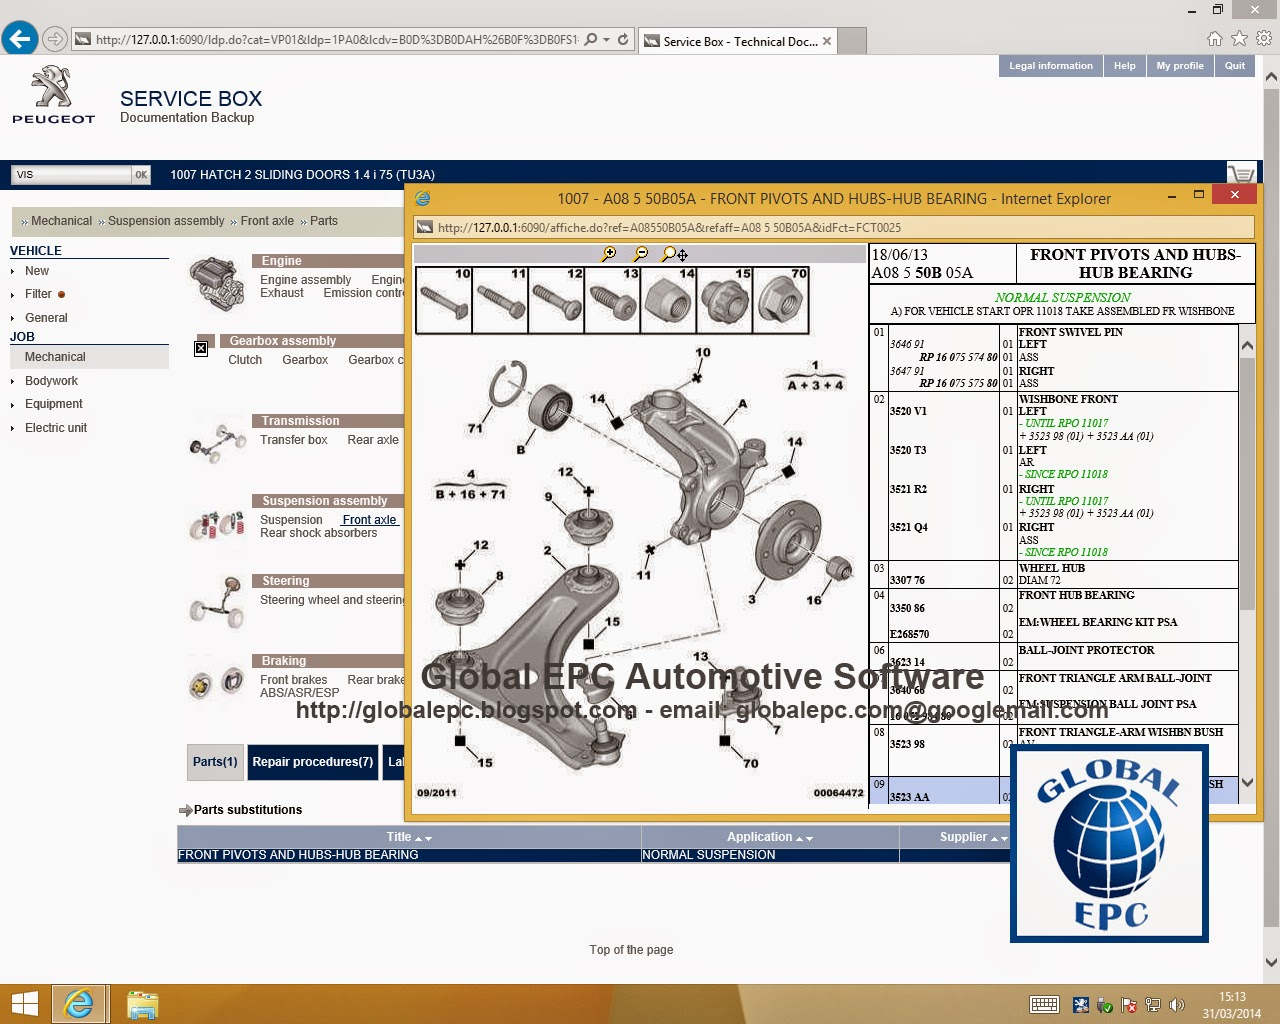 Automotive Wiring Diagrams Software Diagram For Motorcycle Alarm Global Epc Peugeot Service Box 11